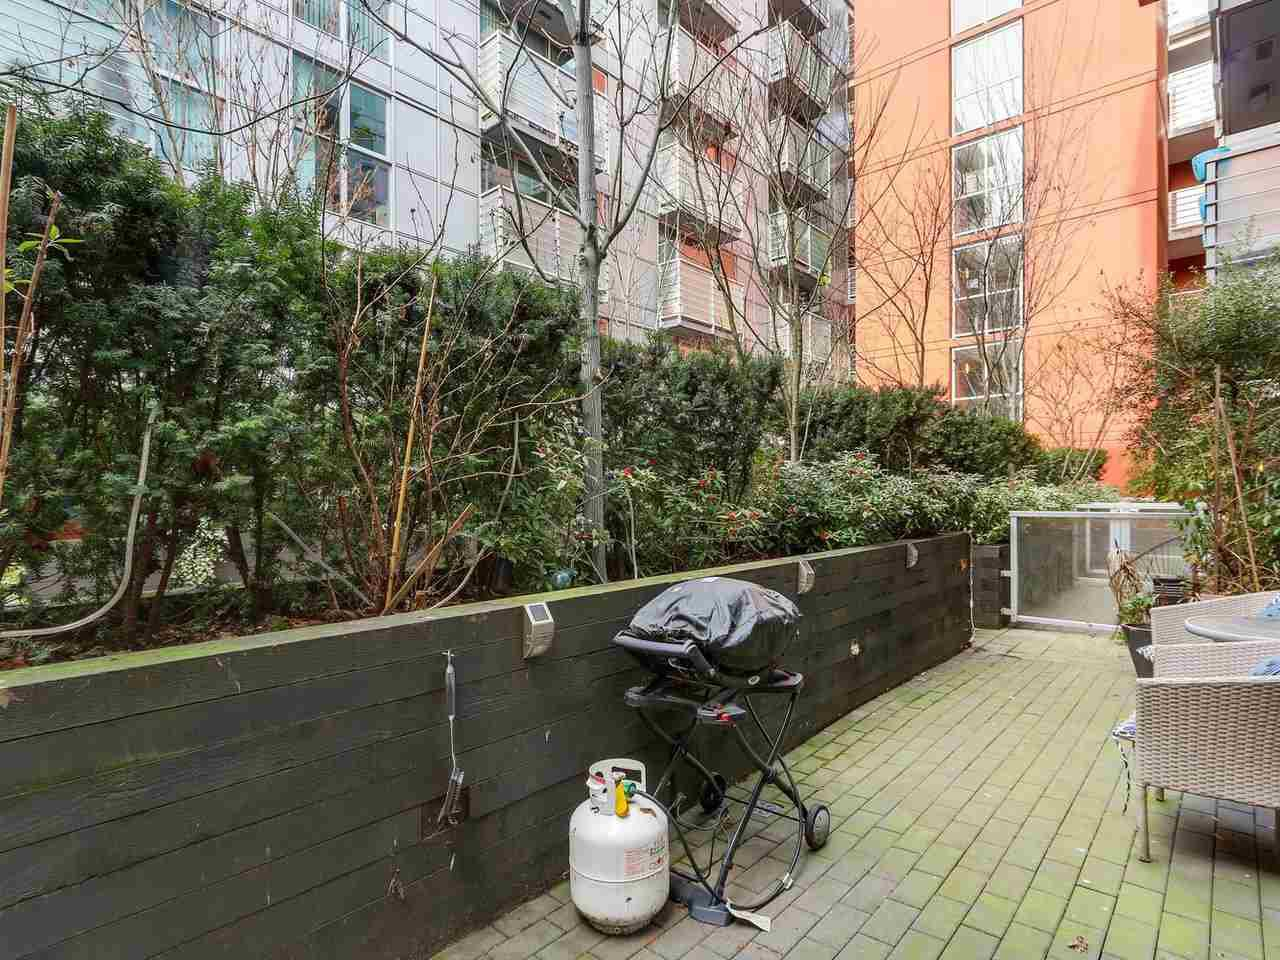 Photo 15: Photos: 217 168 POWELL Street in Vancouver: Downtown VE Condo for sale (Vancouver East)  : MLS®# R2386644